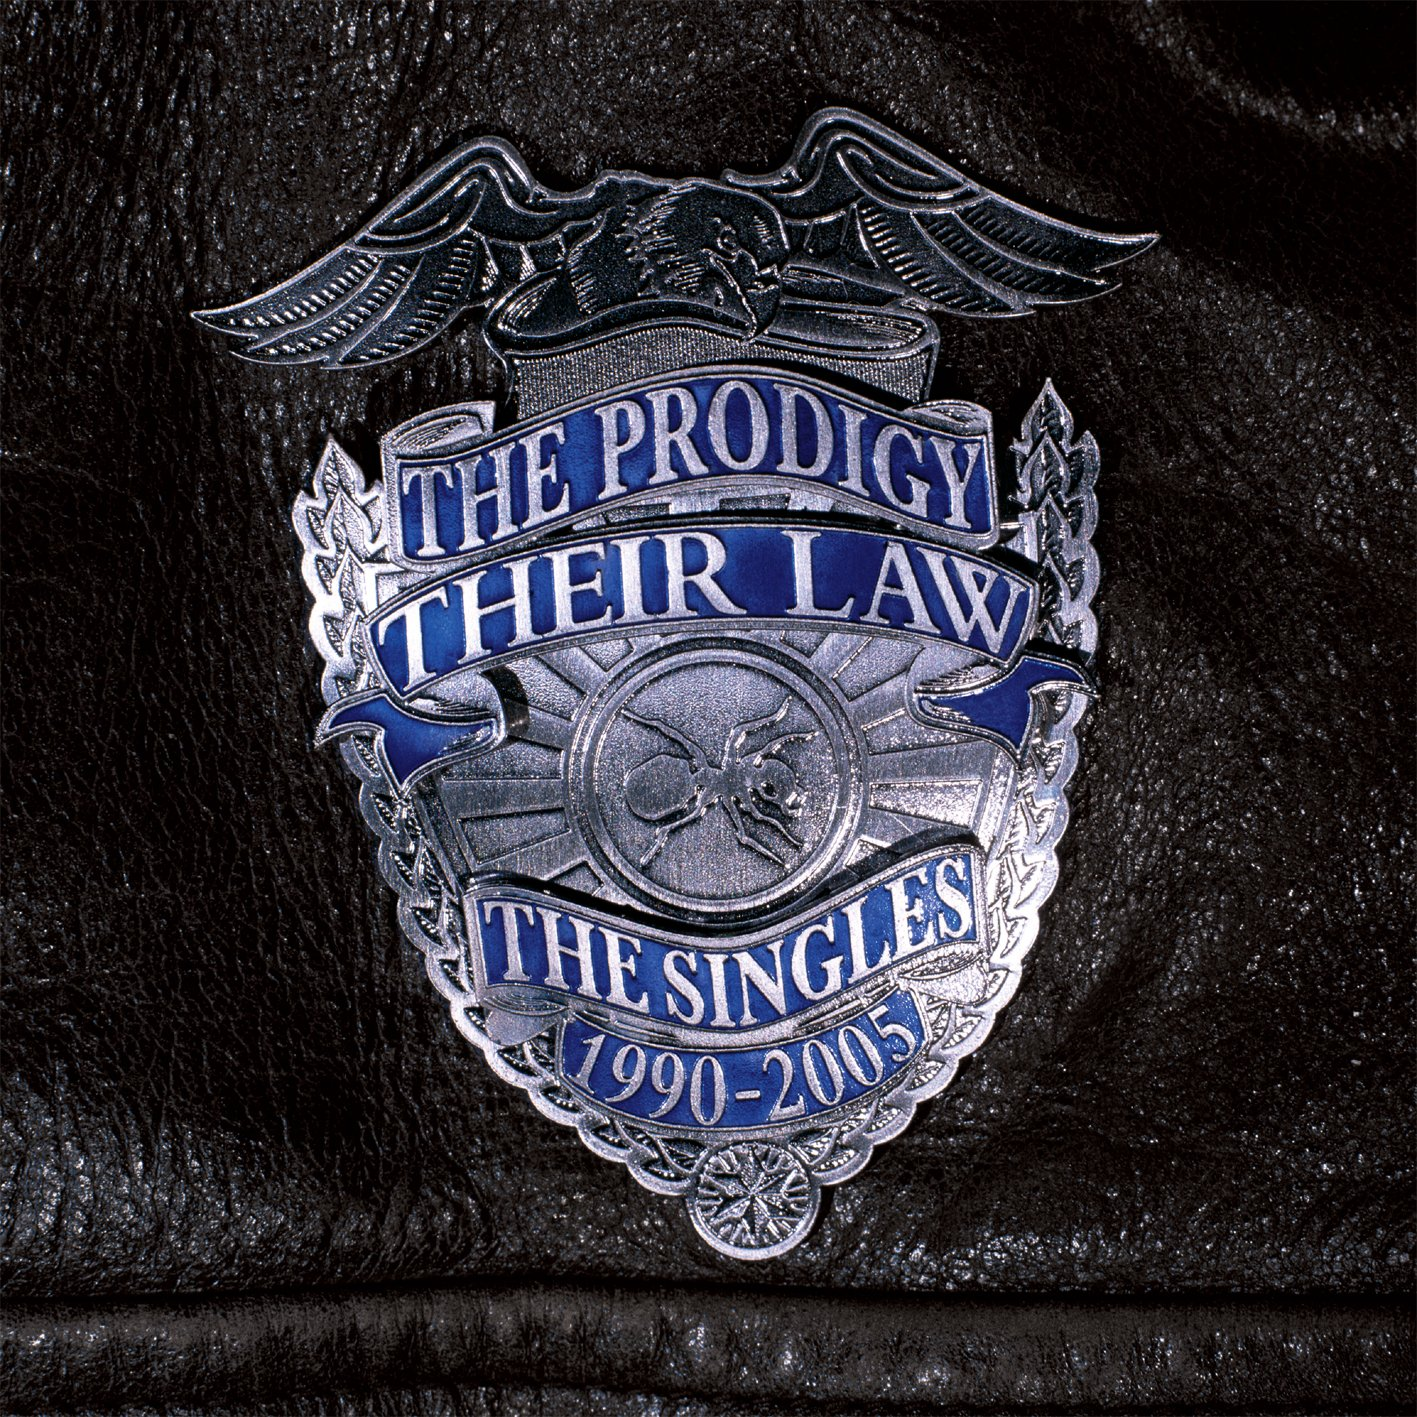 The Prodigy - Their Law - The Singles 1990 - 2005 Limited Edition Silver 2LP Vinyl